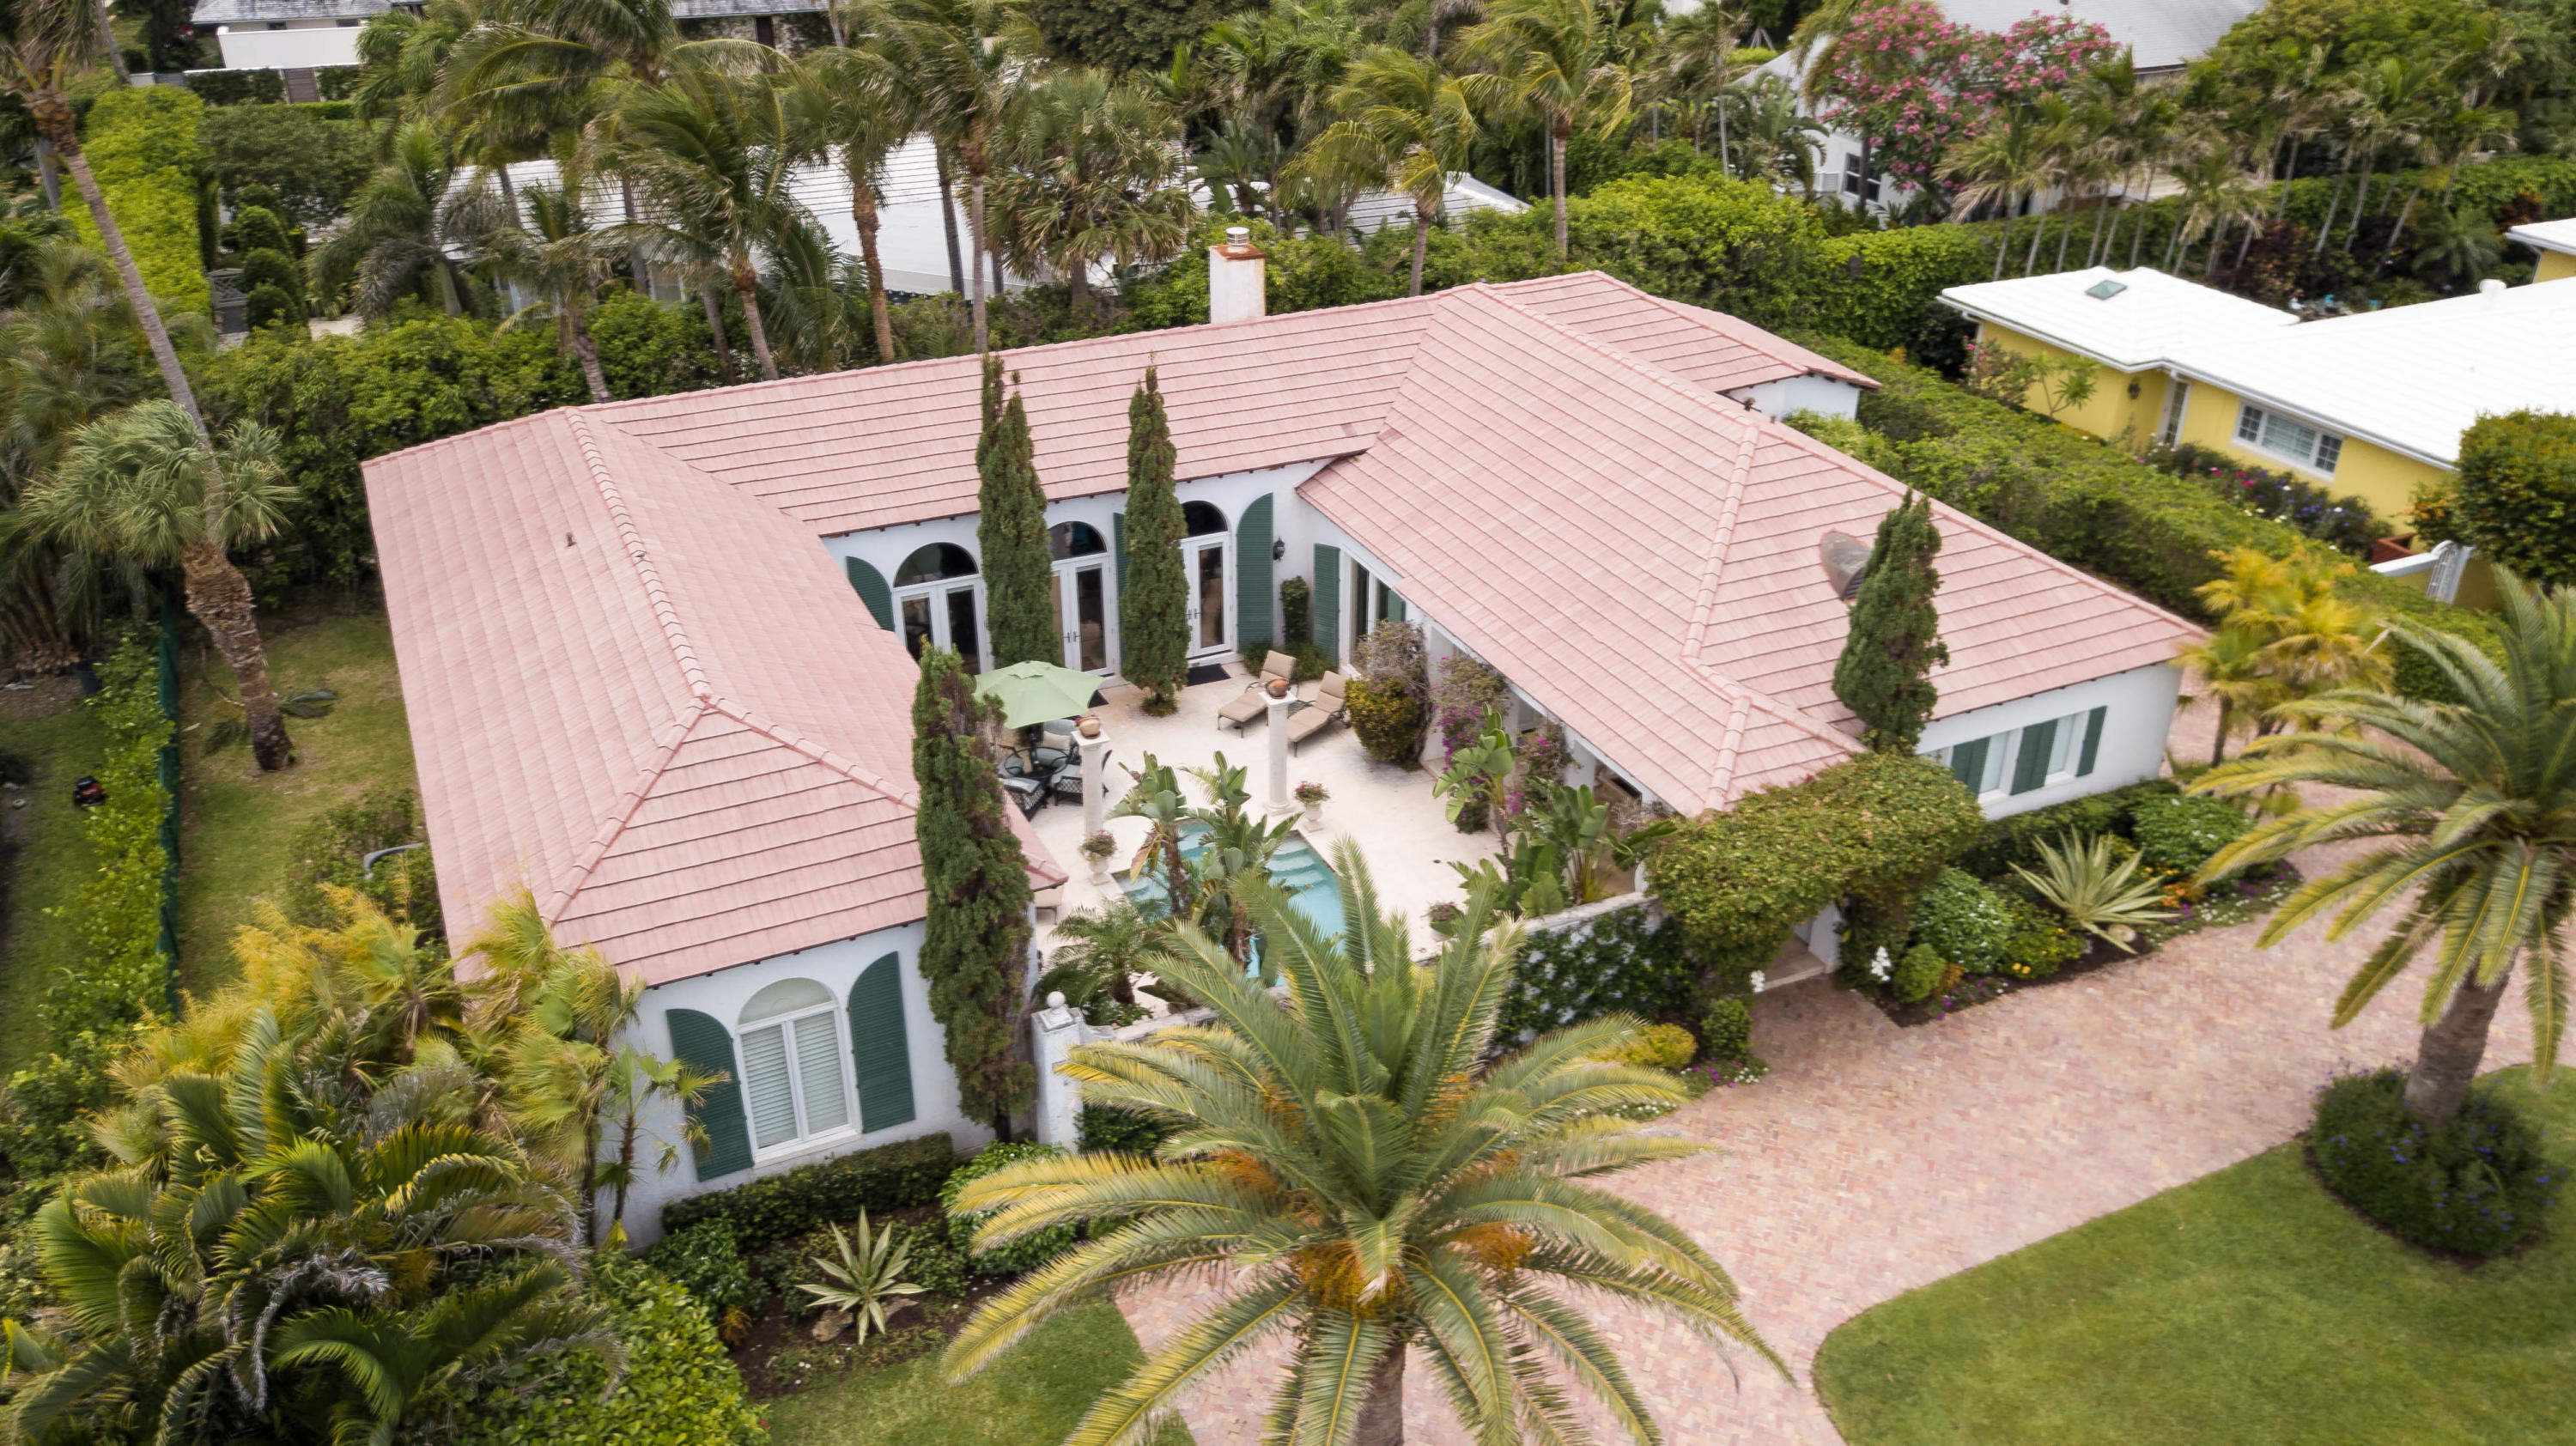 This unique Palm Beach Courtyard home sits on a quiet residential island enclave on the desirable Palm Beach's Southend and boasts 3,146 square feet of interior living space with 3 bedrooms, 3 full baths, 2 car garage and old brick circular drive. Designed by Ballinger Award winning architect, Raphael Saladrigas, the interior features an expansive great room with lofty tray ceilings, beautiful marble floors with Verde S. Denis marble accents in the foyer and fireplace surround. The mantel piece is from the late 1800's. The master en-suite has double walk-in closets and marble appointed bathroom with double sinks. Both the master en-suite and the great room, open to the private courtyard, a tranquil outdoor living area featuring a fountain, heated saltwater pool and a relaxing tropical setting. This property is ideally located within walking distance to Phipps Ocean Park Beach and Raymond Floyd Golf Course.